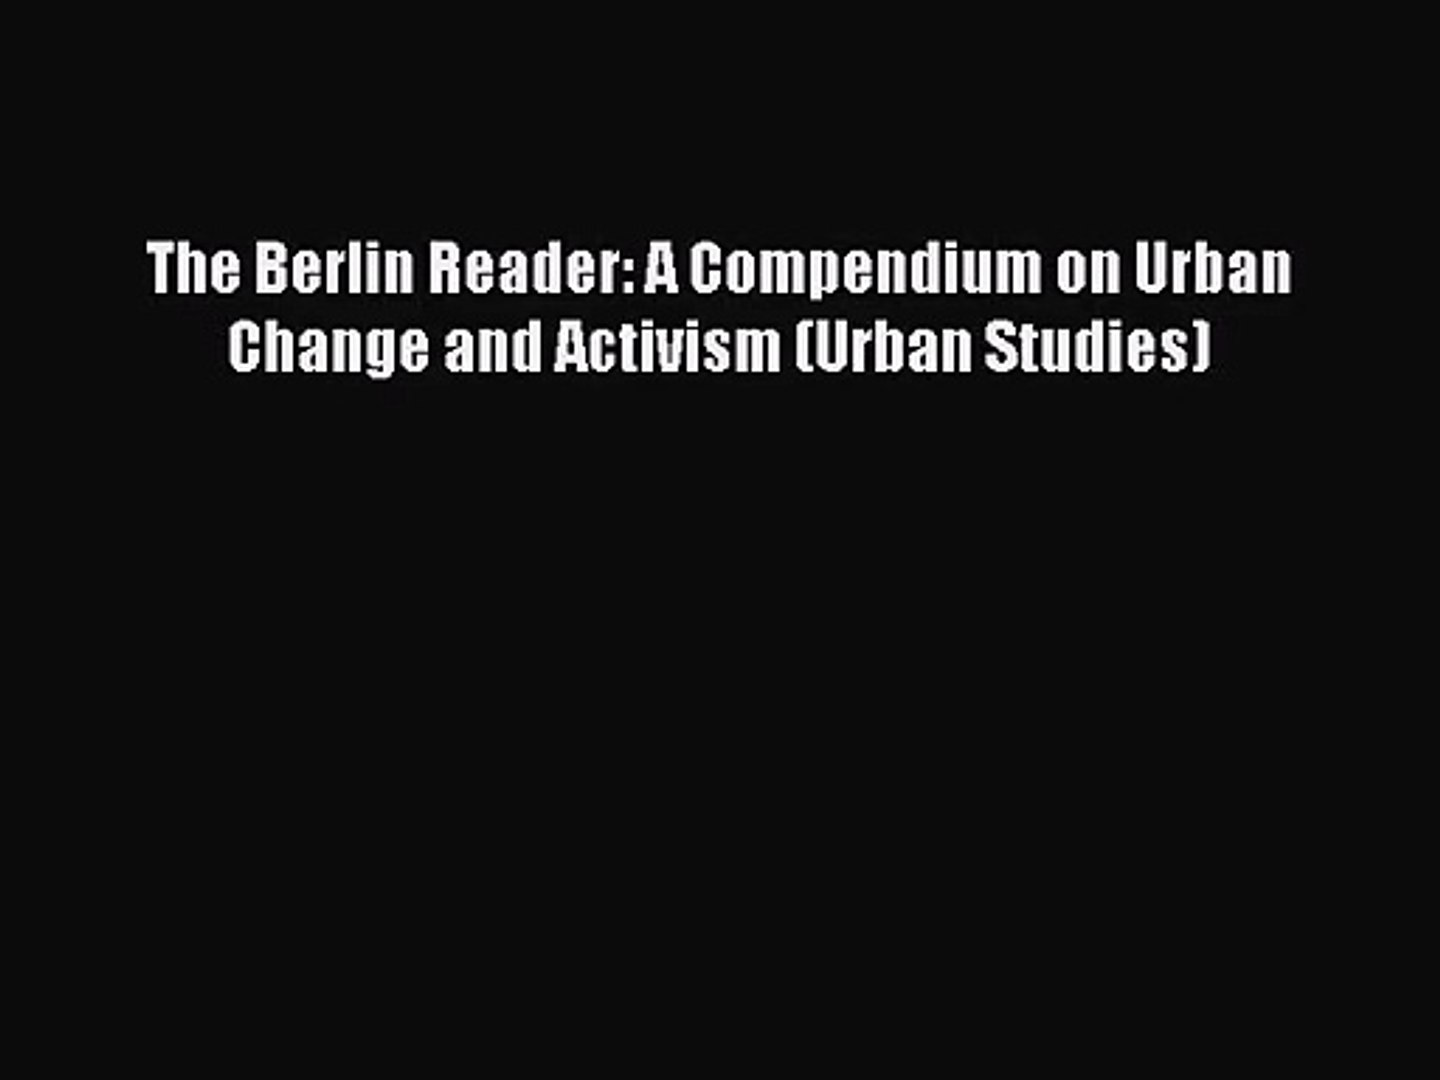 The Berlin Reader: A Compendium on Urban Change and Activism (Urban Studies)  Free Books